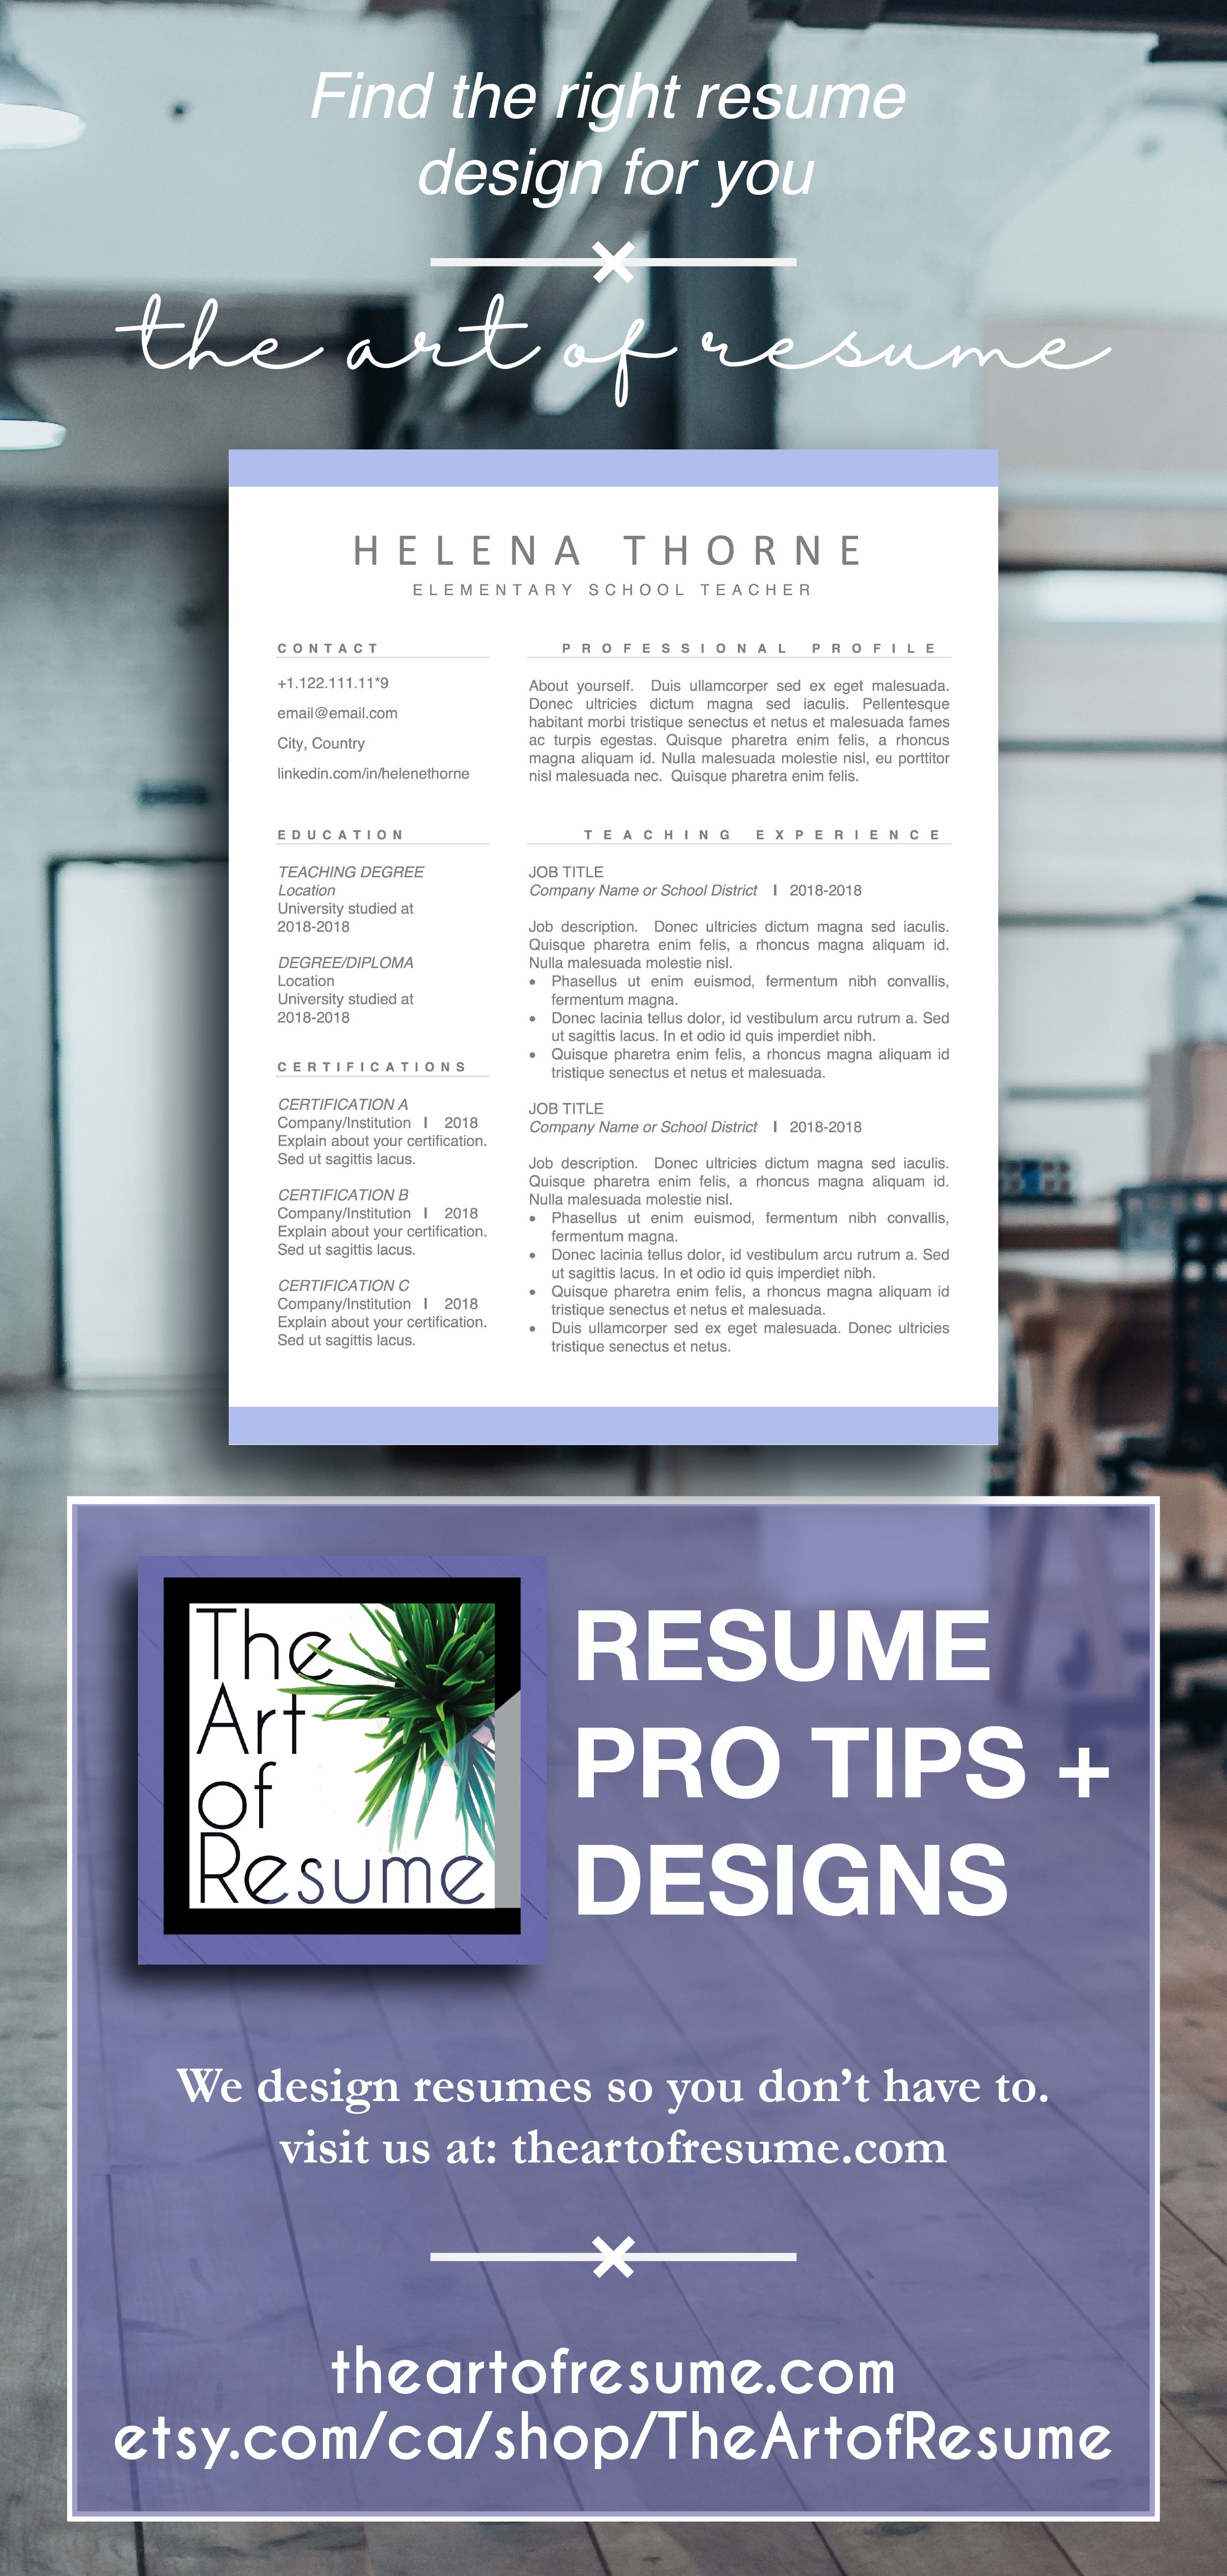 Resume Templates In Word 2018 $10 Etsy Salebuy Now And Save Big Resume Template Word  1 Page .